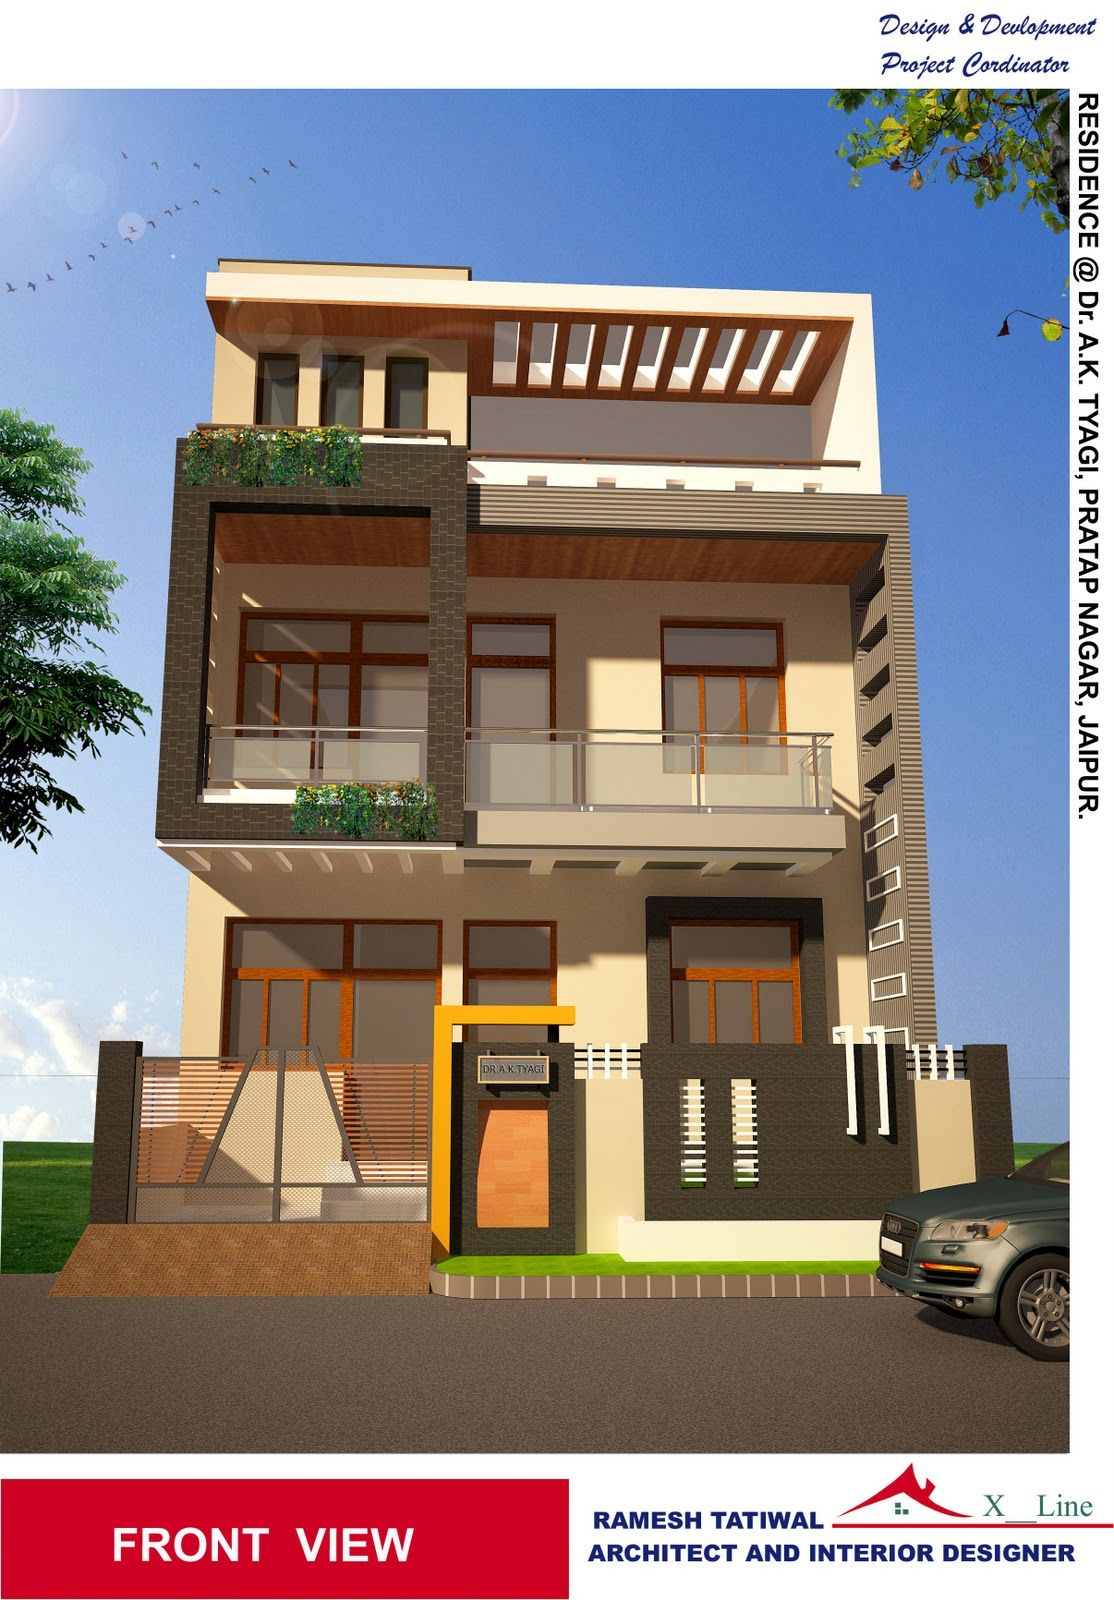 Housedesigns modern indian home architecture design from Indian small house design pictures